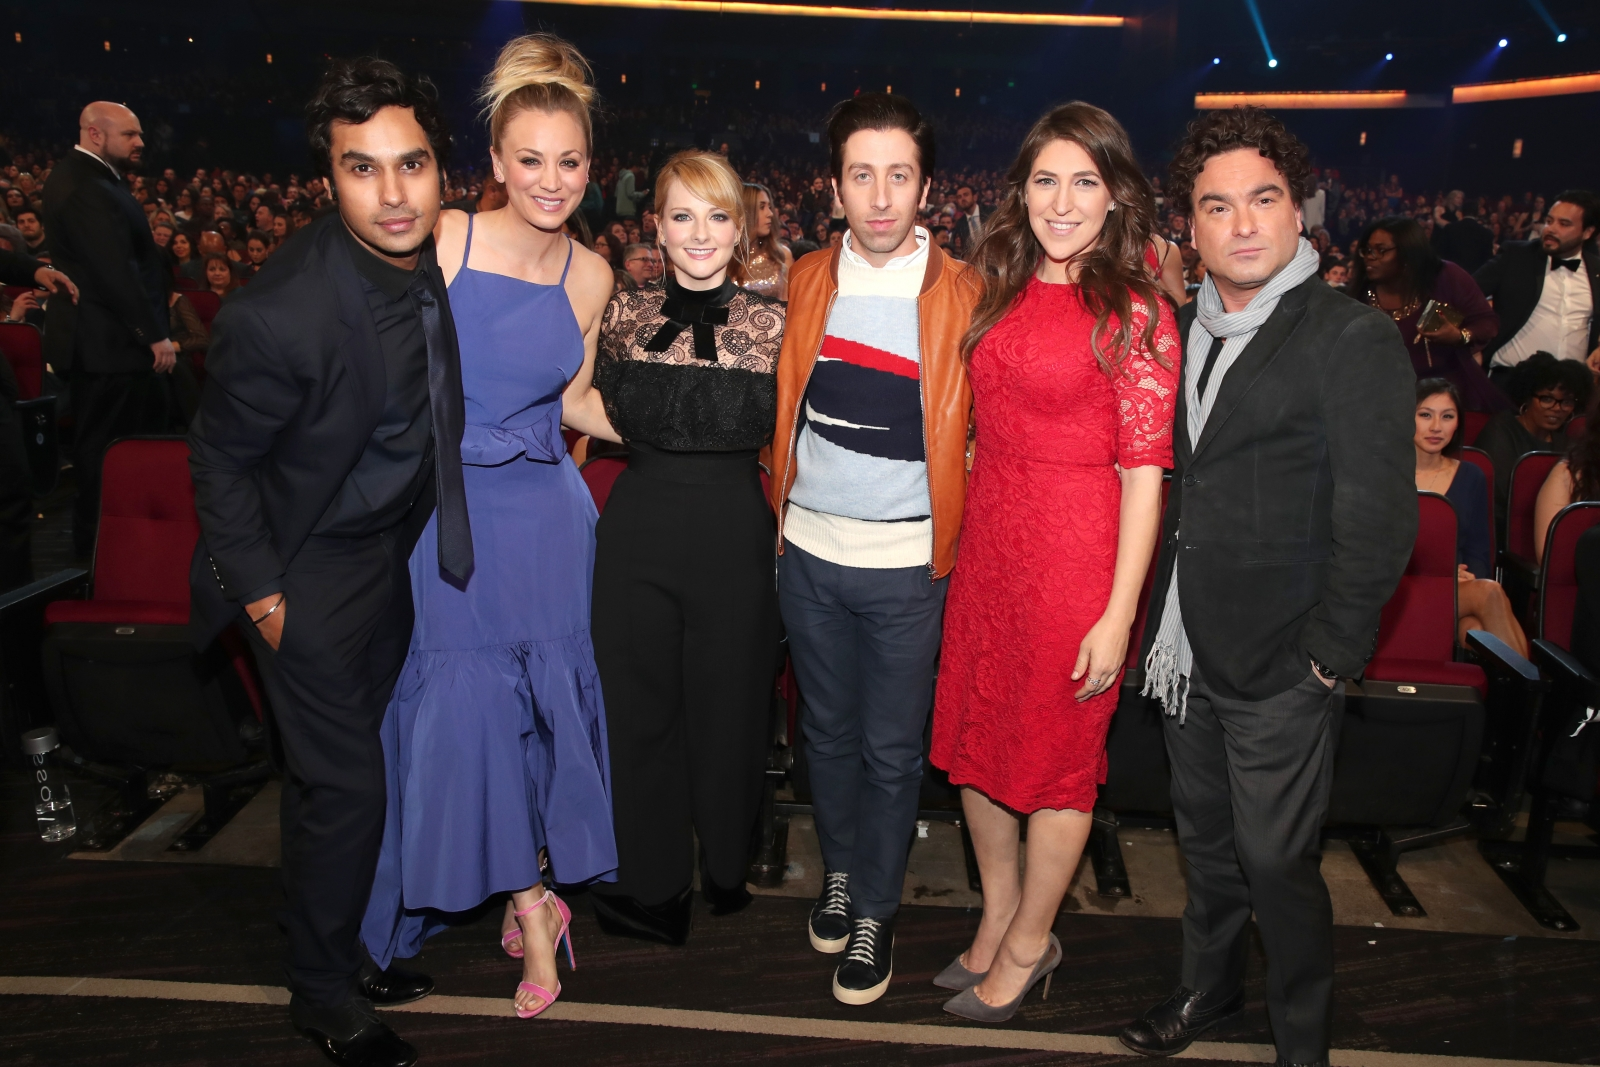 big bang theory 'the big bang theory' star kunal nayyar revealed that season 10 of the hit cbs series 'could be the last' — details.